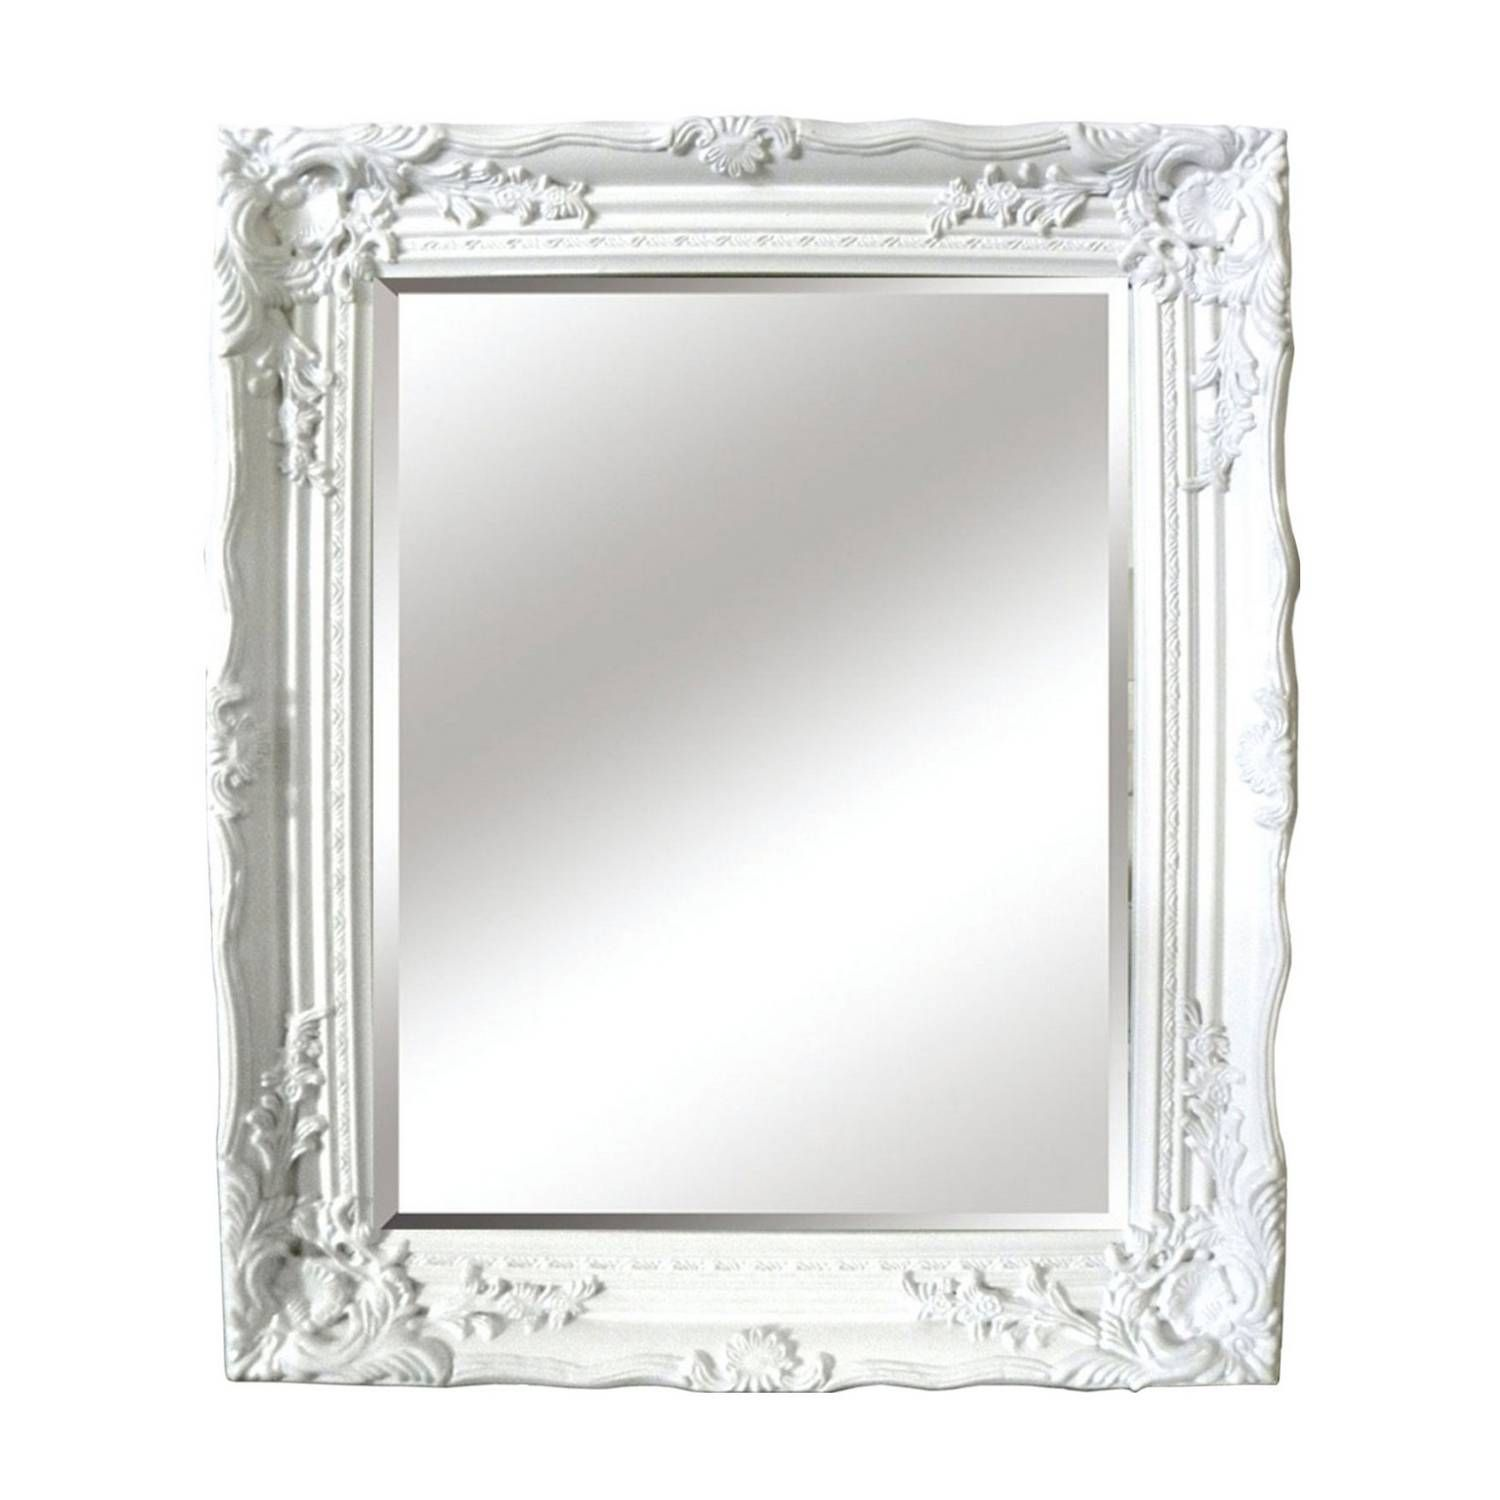 Buy Antique White Ornate Mirror